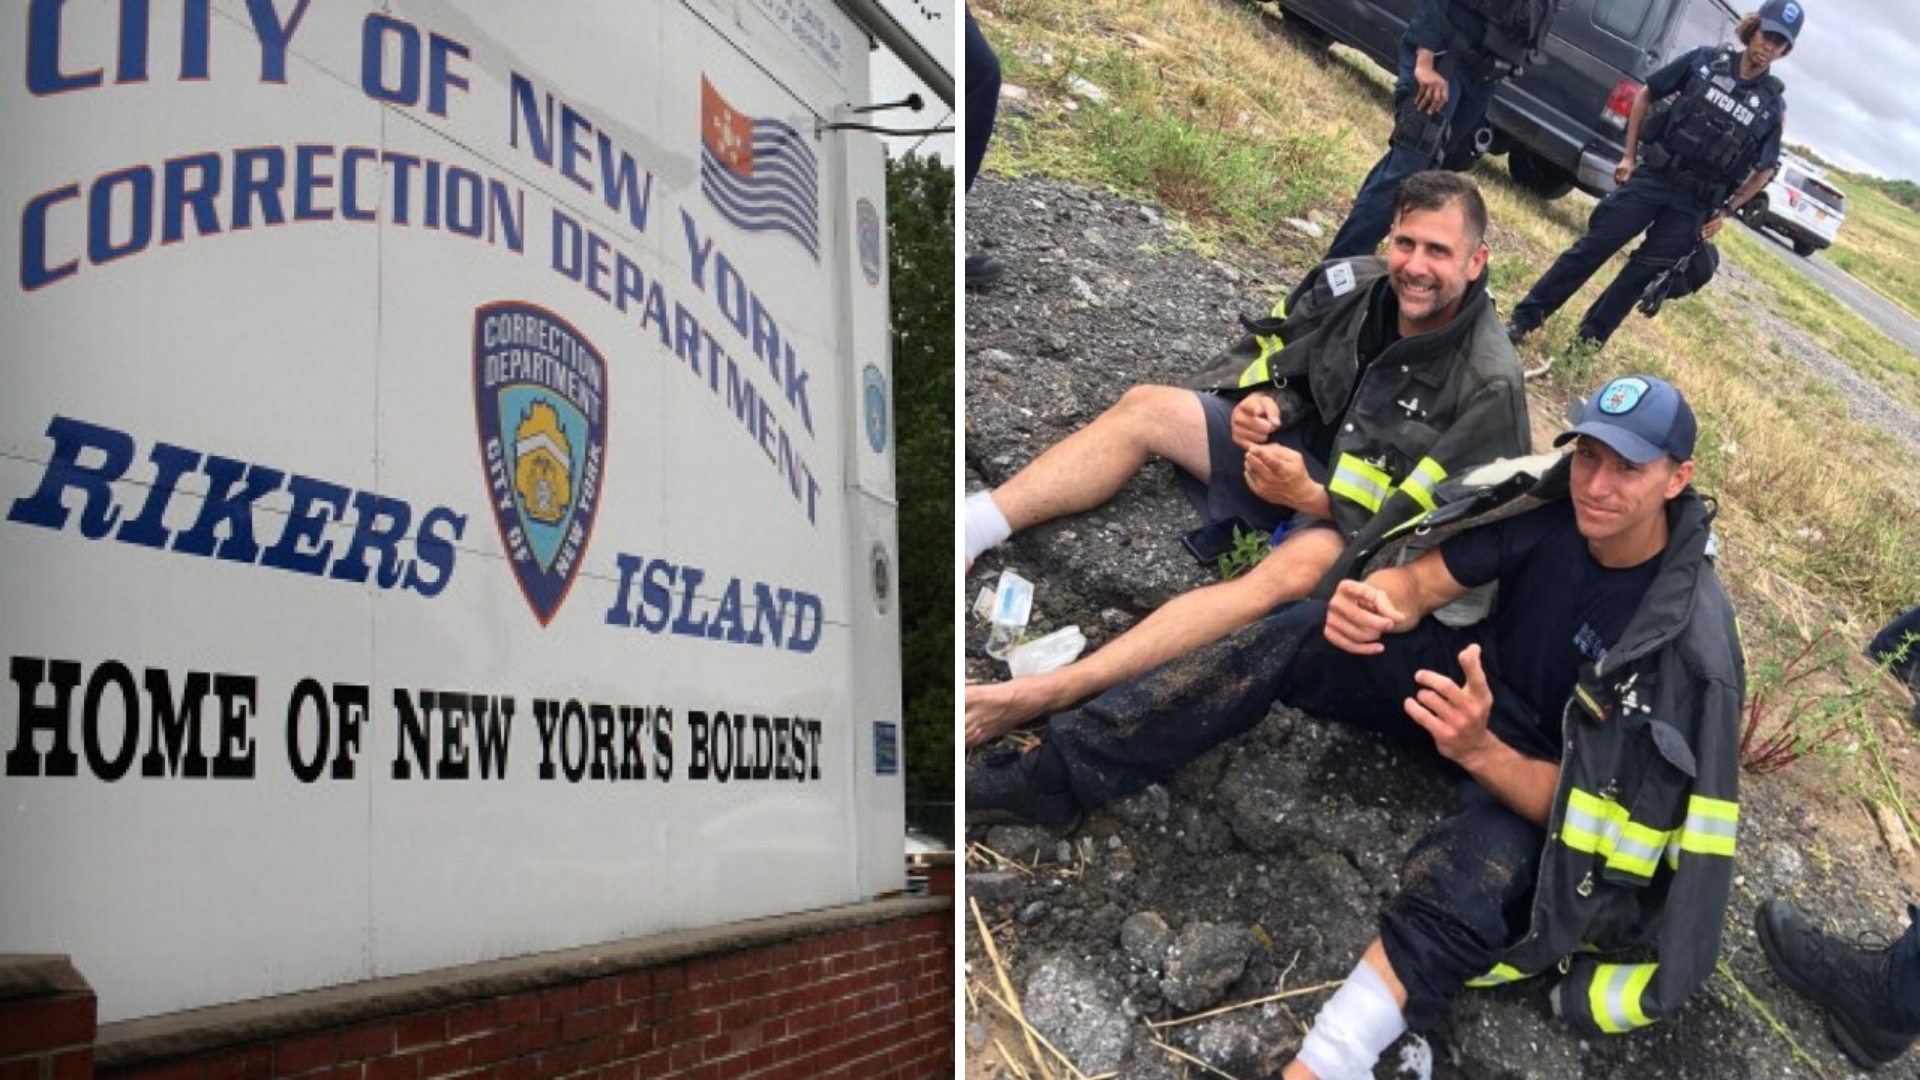 Officers apprehended an escaping inmate at Rikers